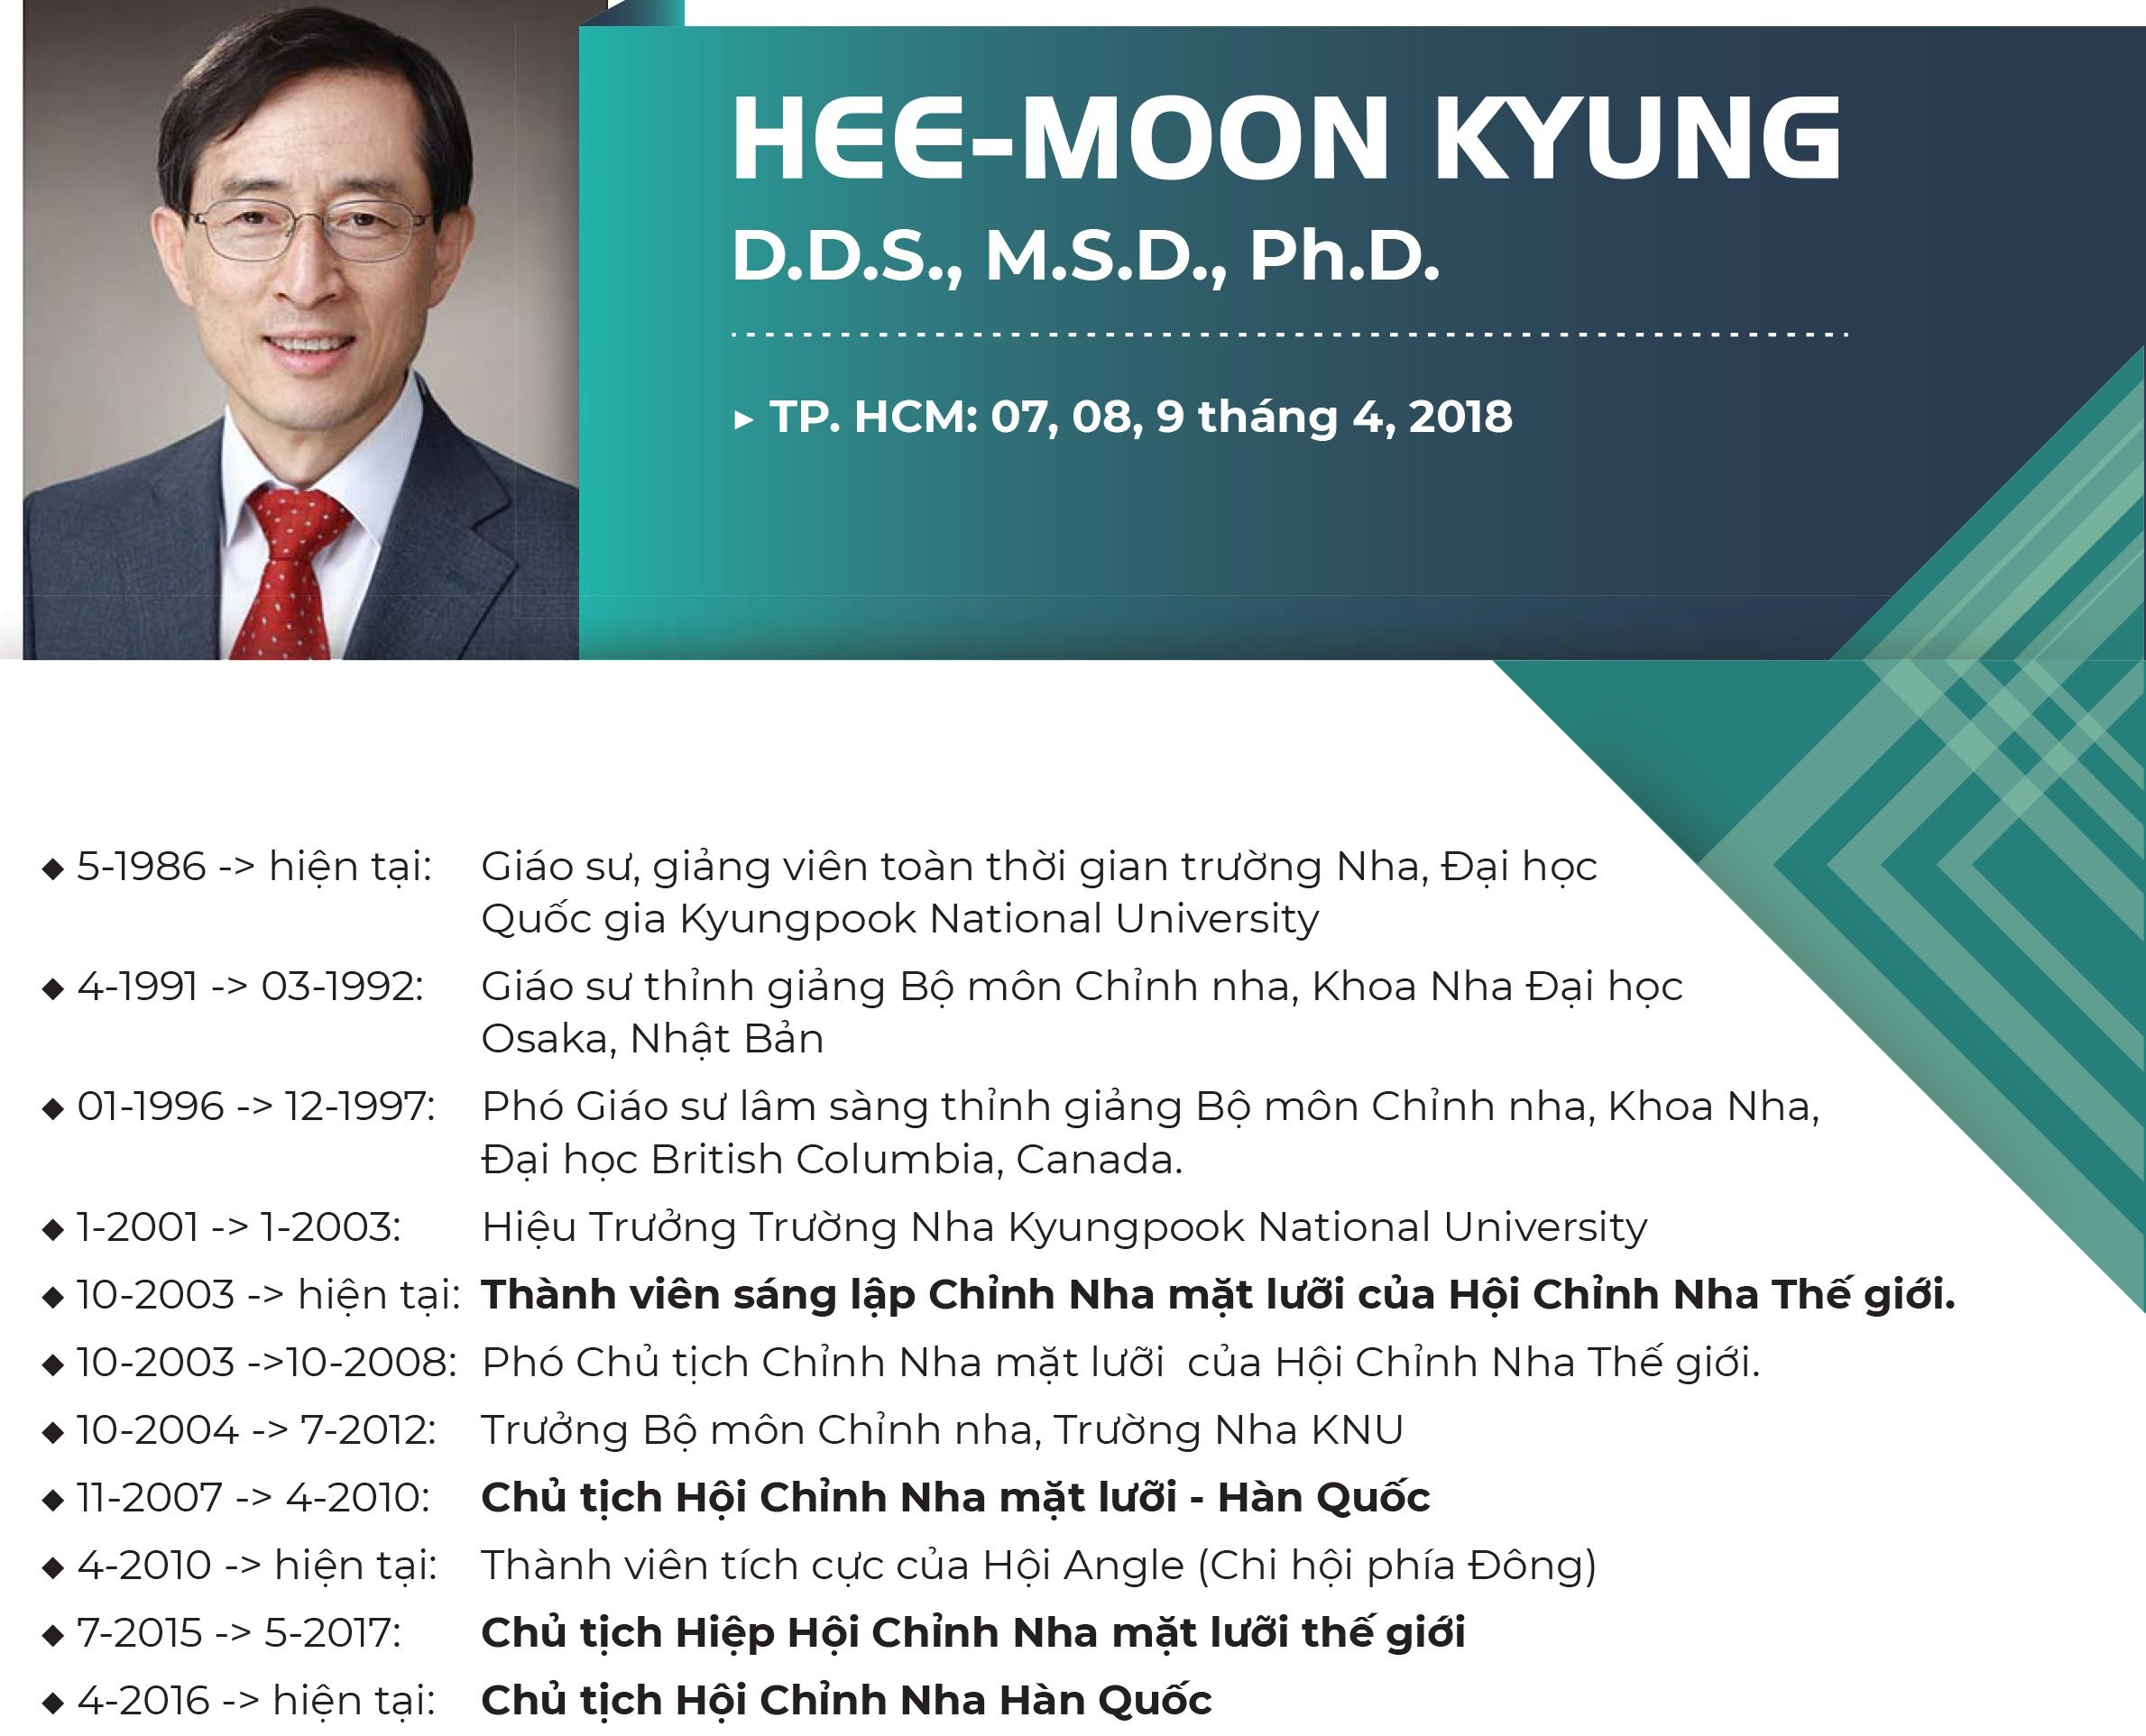 Dr. Hee-Moon Kyung V.ai